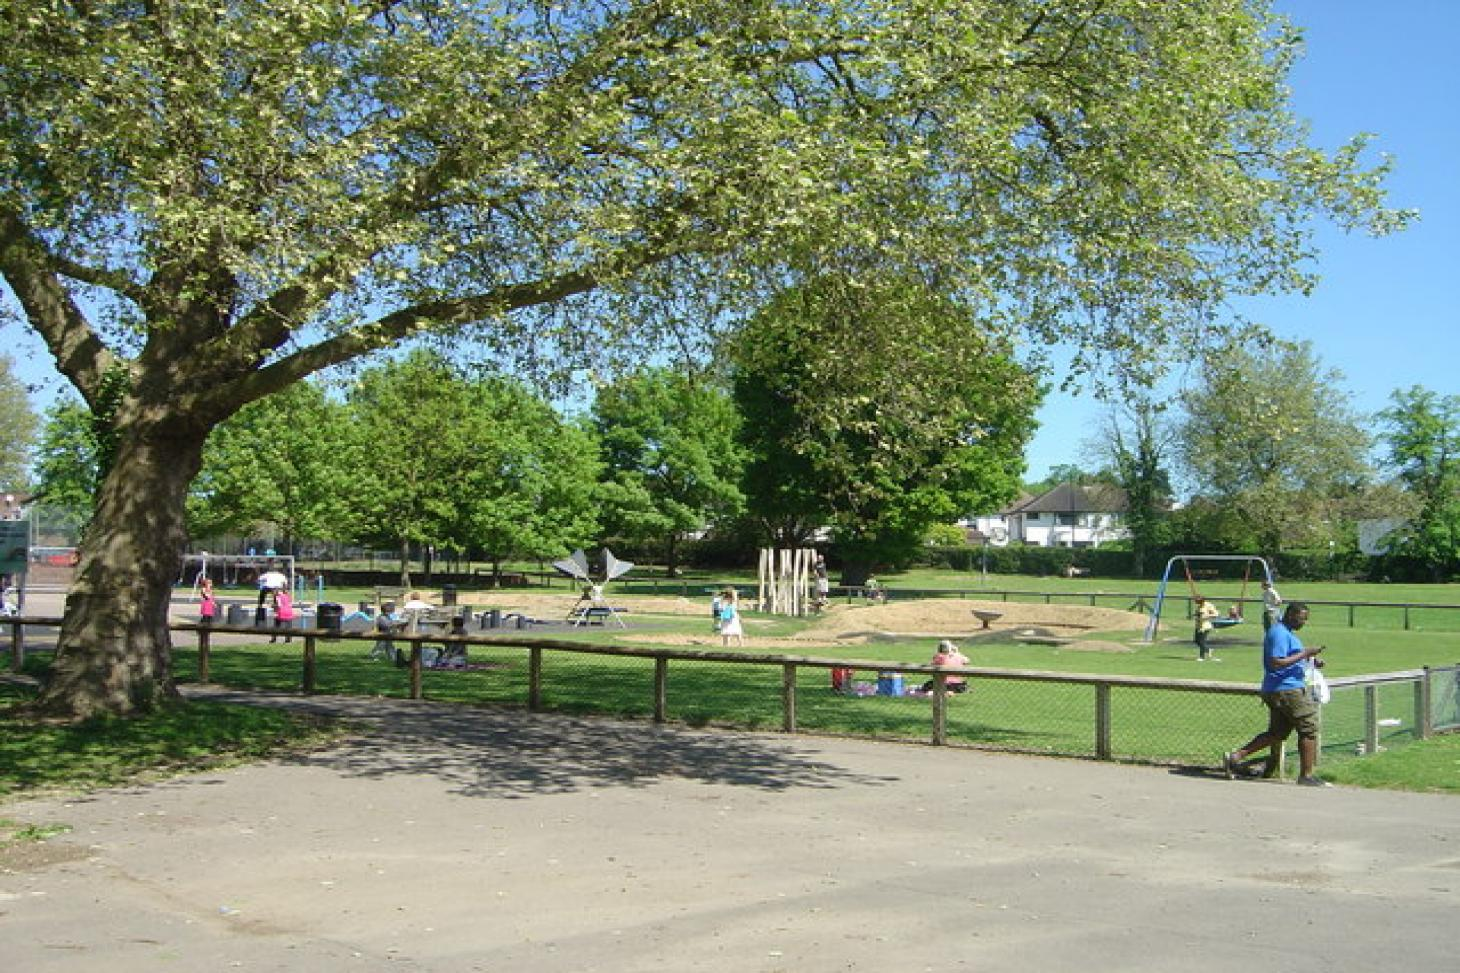 Harrow Weald Recreation Ground Outdoor | Hard (macadam) tennis court